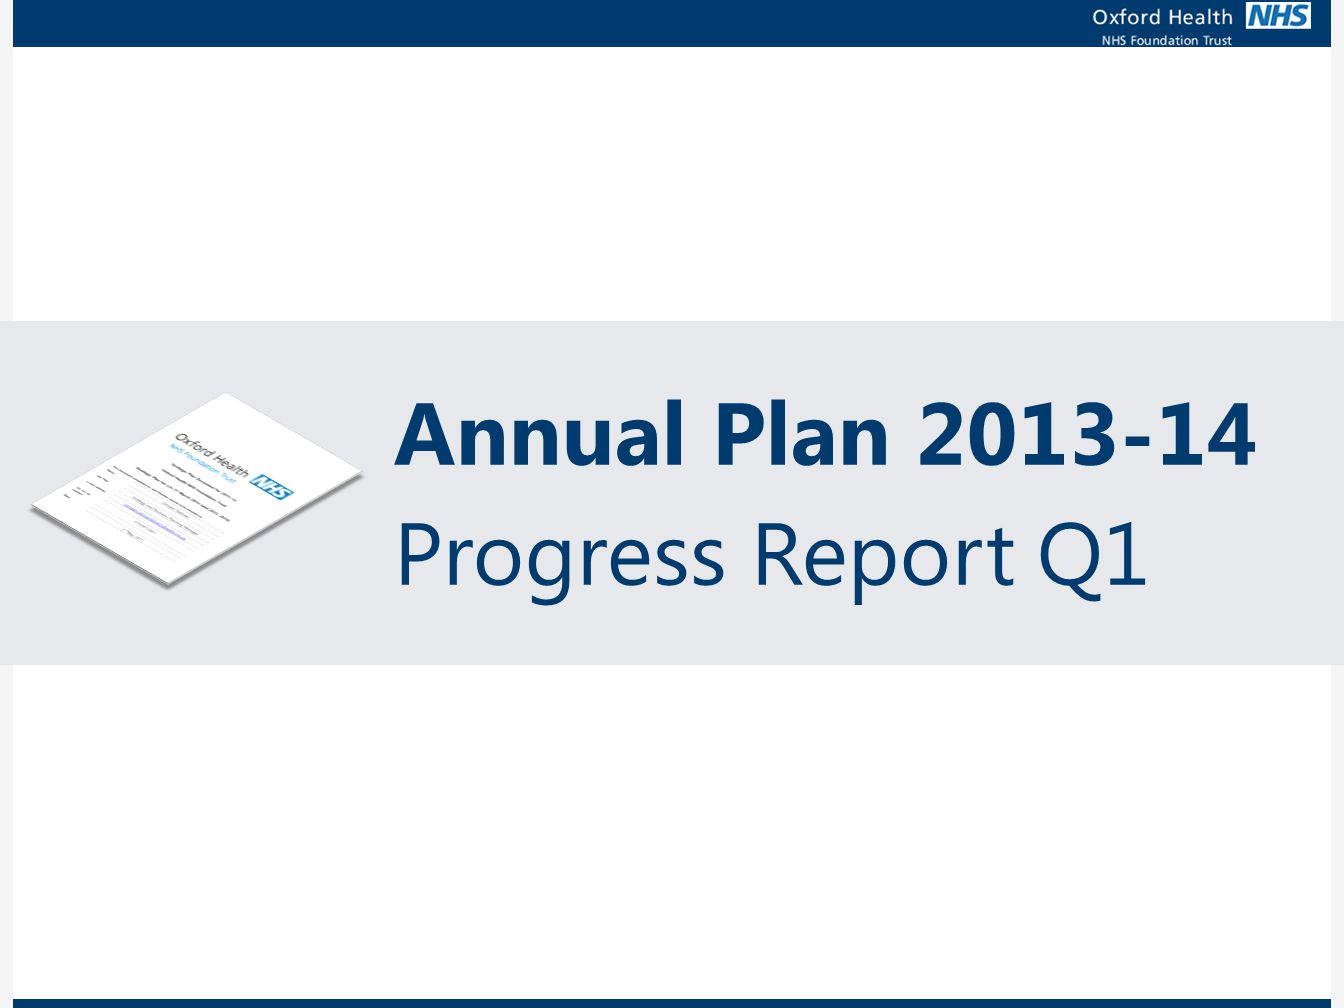 ANNUAL PLAN PROGRESS BY STRATEGIC DRIVER/ENABLER Annual Plan Progress Report – Quarter 1 Summary STRTEGIC DRIVER / ENABLER SUMMARY OF PROGRESS / ACTIONS TO MITIGATE ANY SLIPPAGESUMMARY OF RISKS, ISSUES, CONCERNS AND CHANGES Driving Quality Improve- ment DQI 4 Reducing ligature risks and improving privacy and dignity on wards – Manor house construction is on track with Kier forecasting completion in October, a month early.